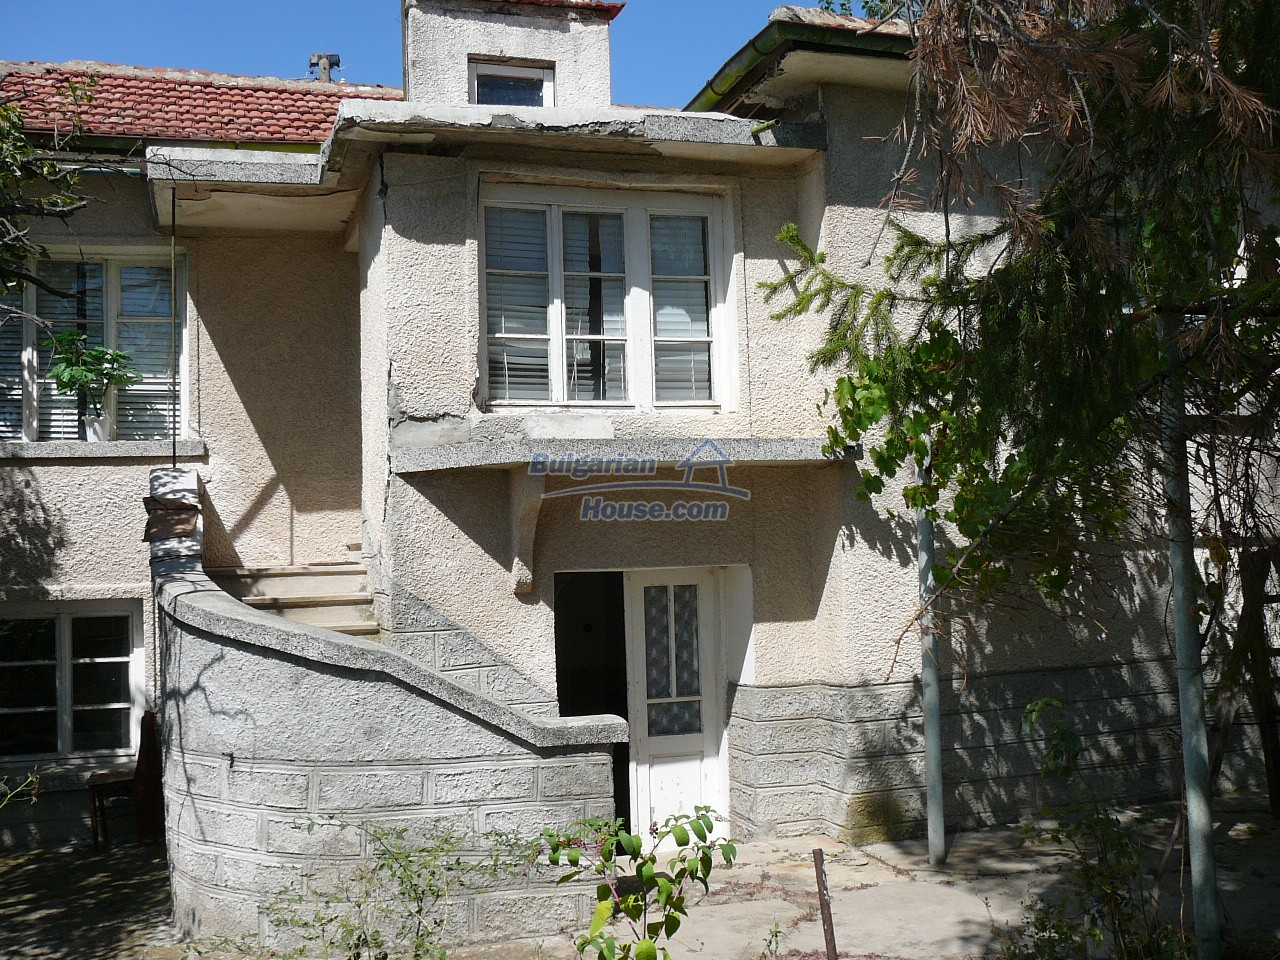 12527:3 - House  in good condition Stara Zagora region 55km to Plovdiv